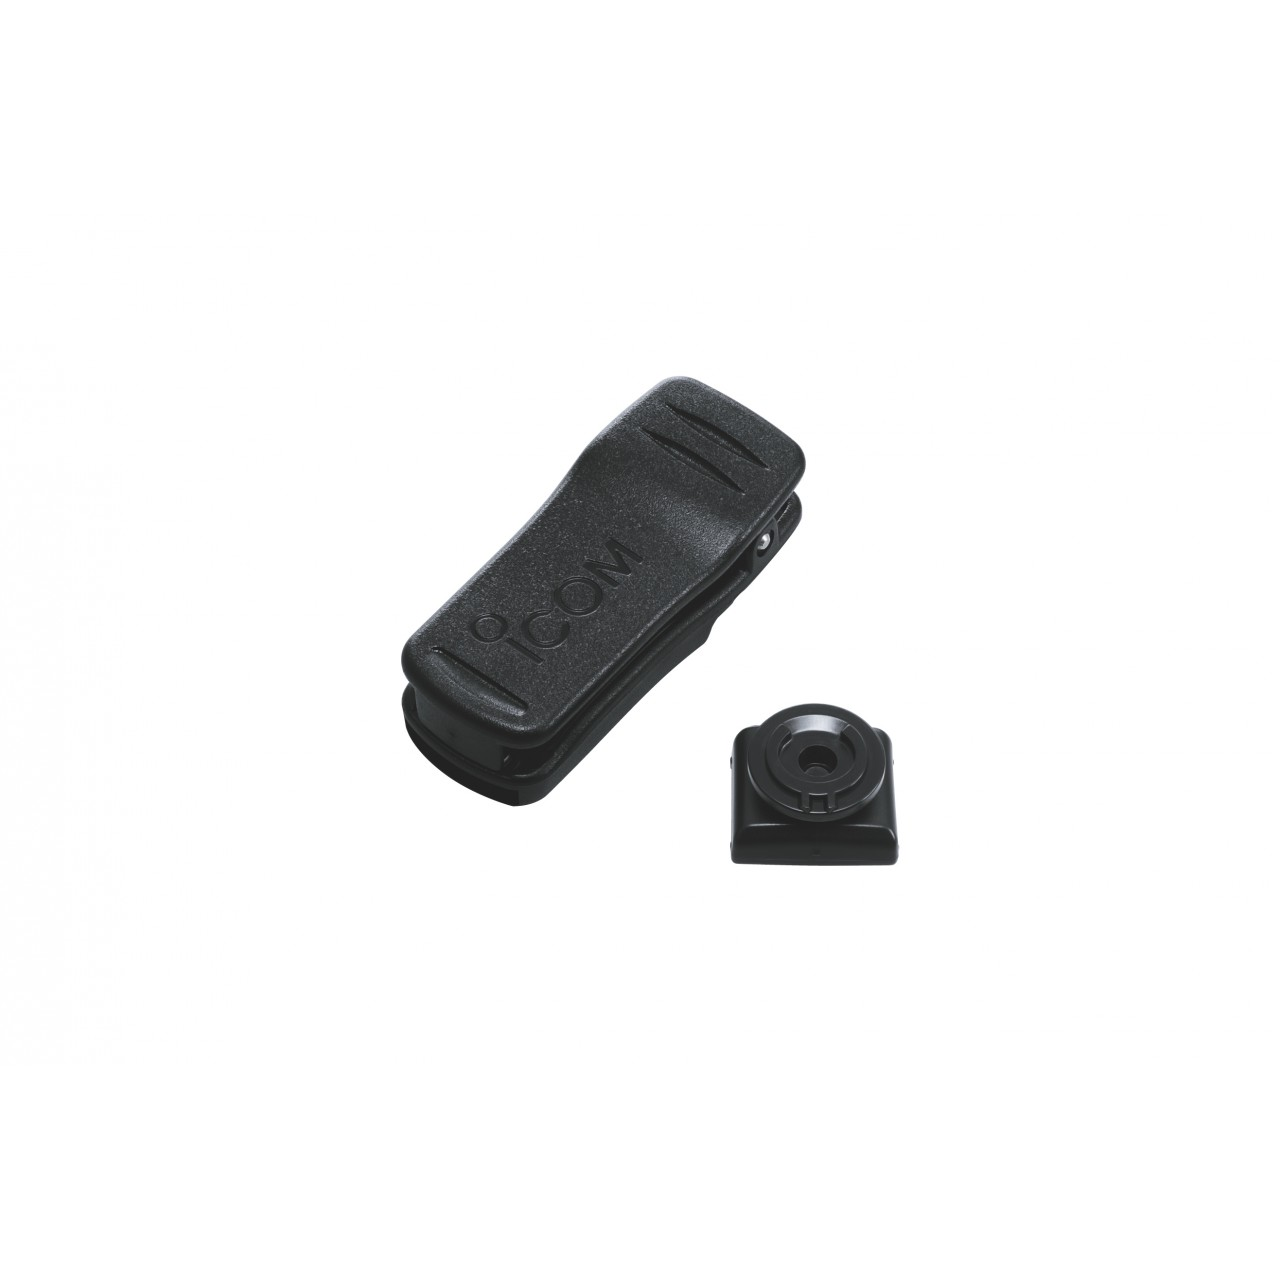 MB-93 Covers, fasteners and cradles - ICOM